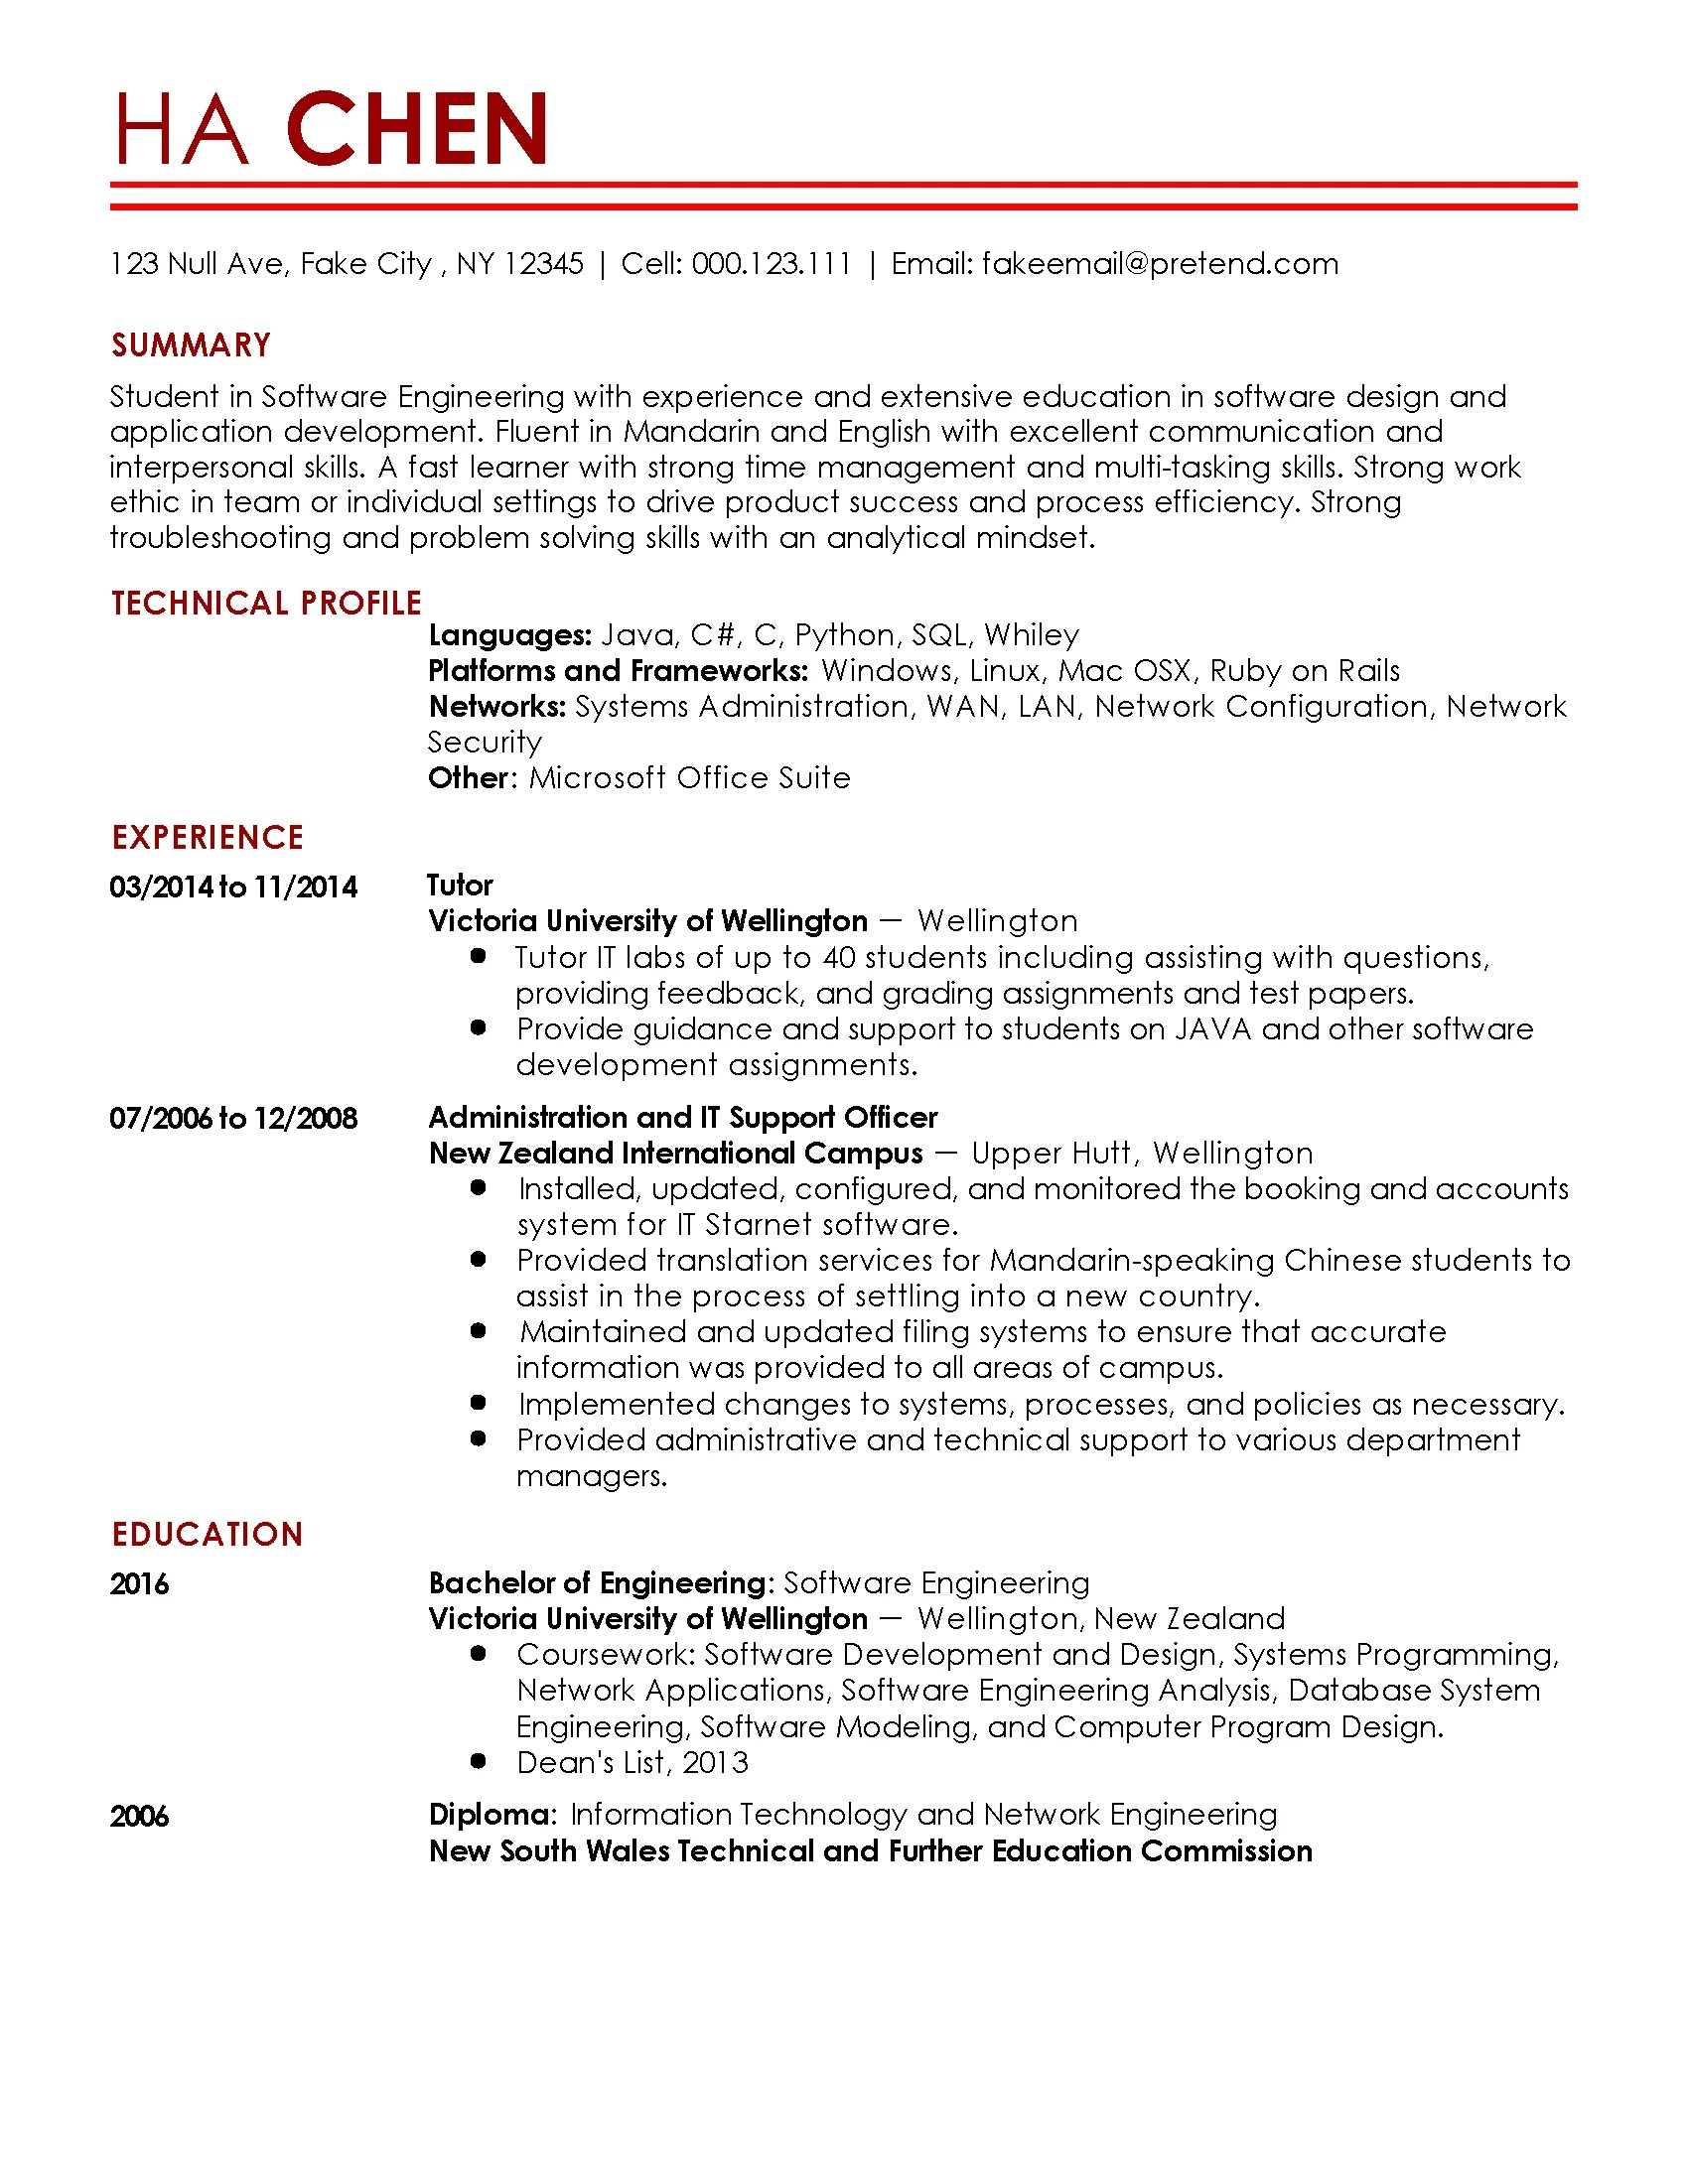 Software Professional Resume Samples Professional Entry Level Software Engineer Templates To Showcase